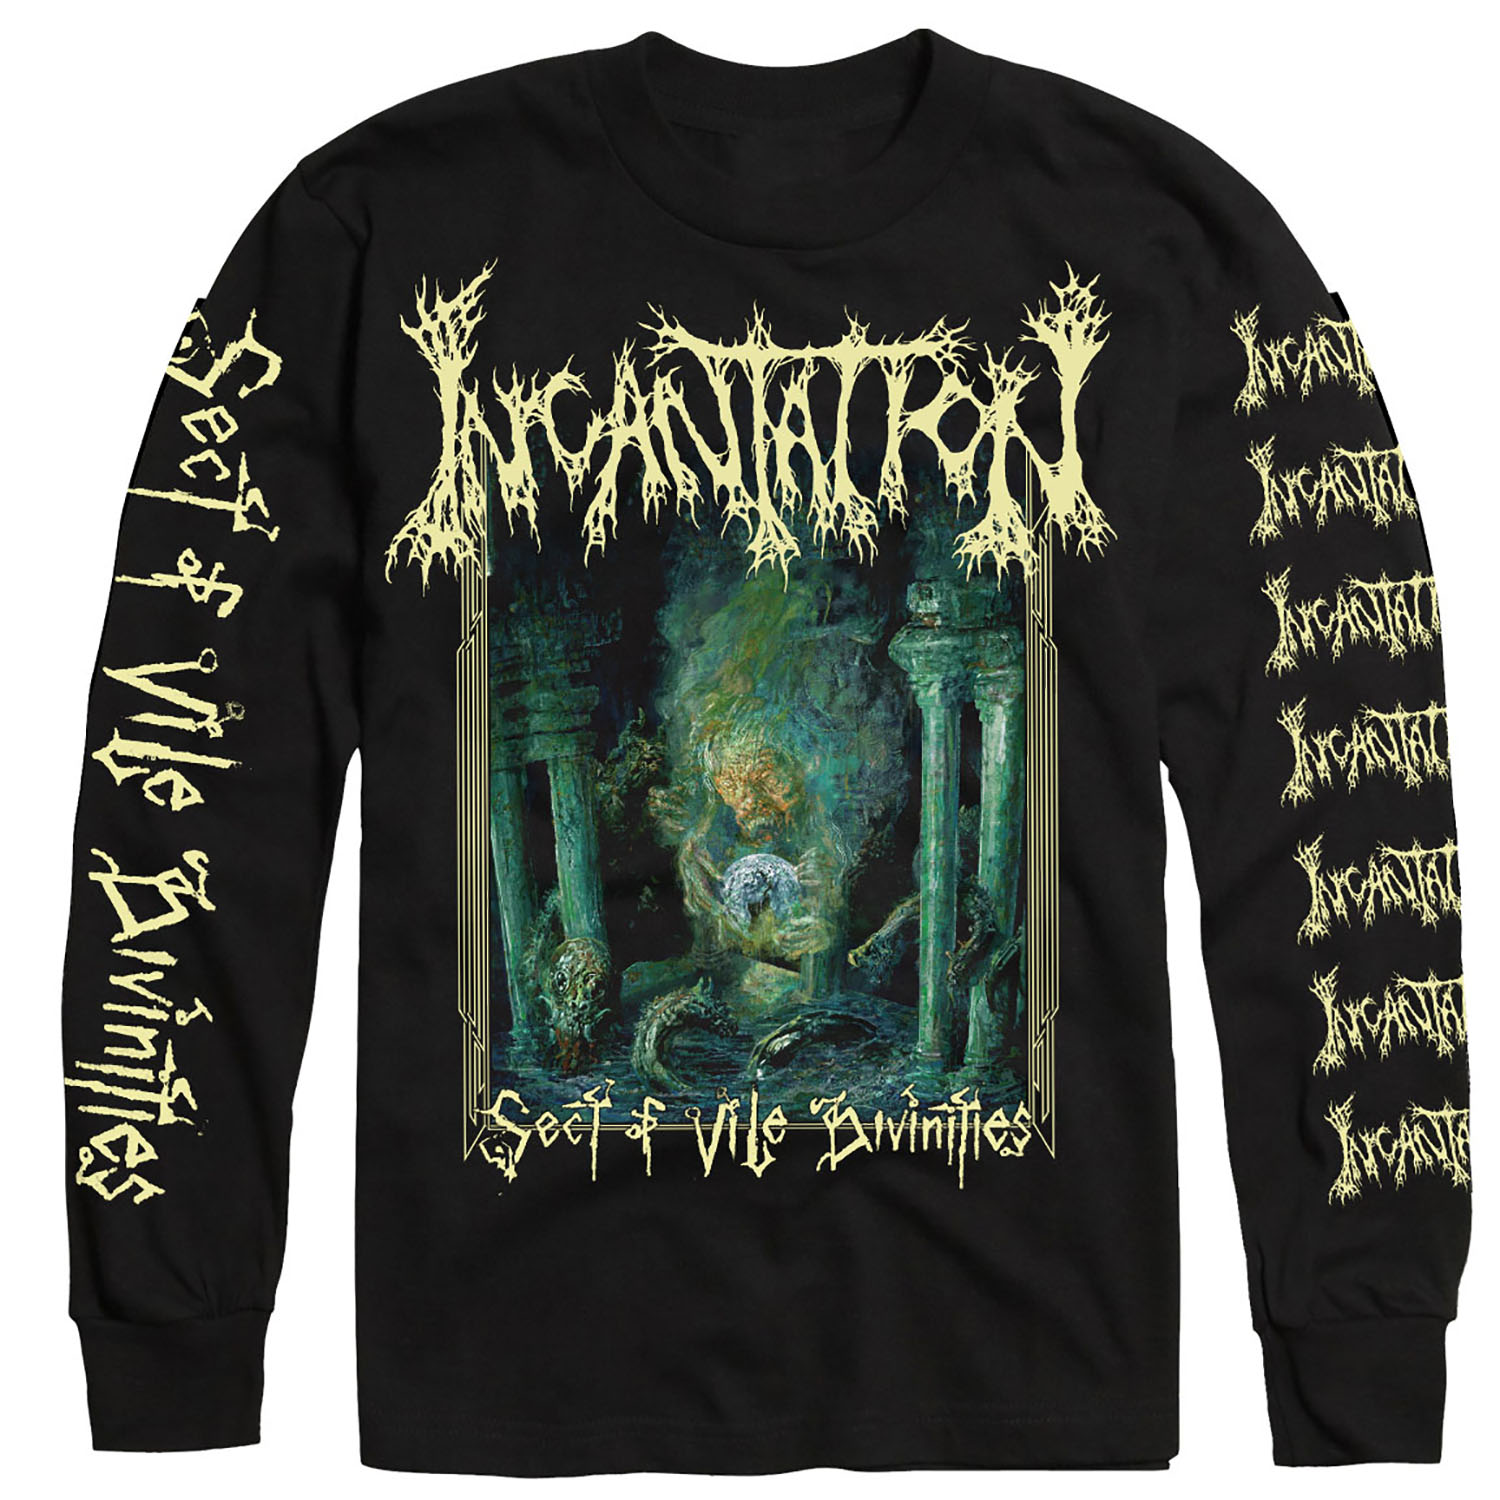 Sect of Vile Divinities Longsleeve Shirt + LP Bundle